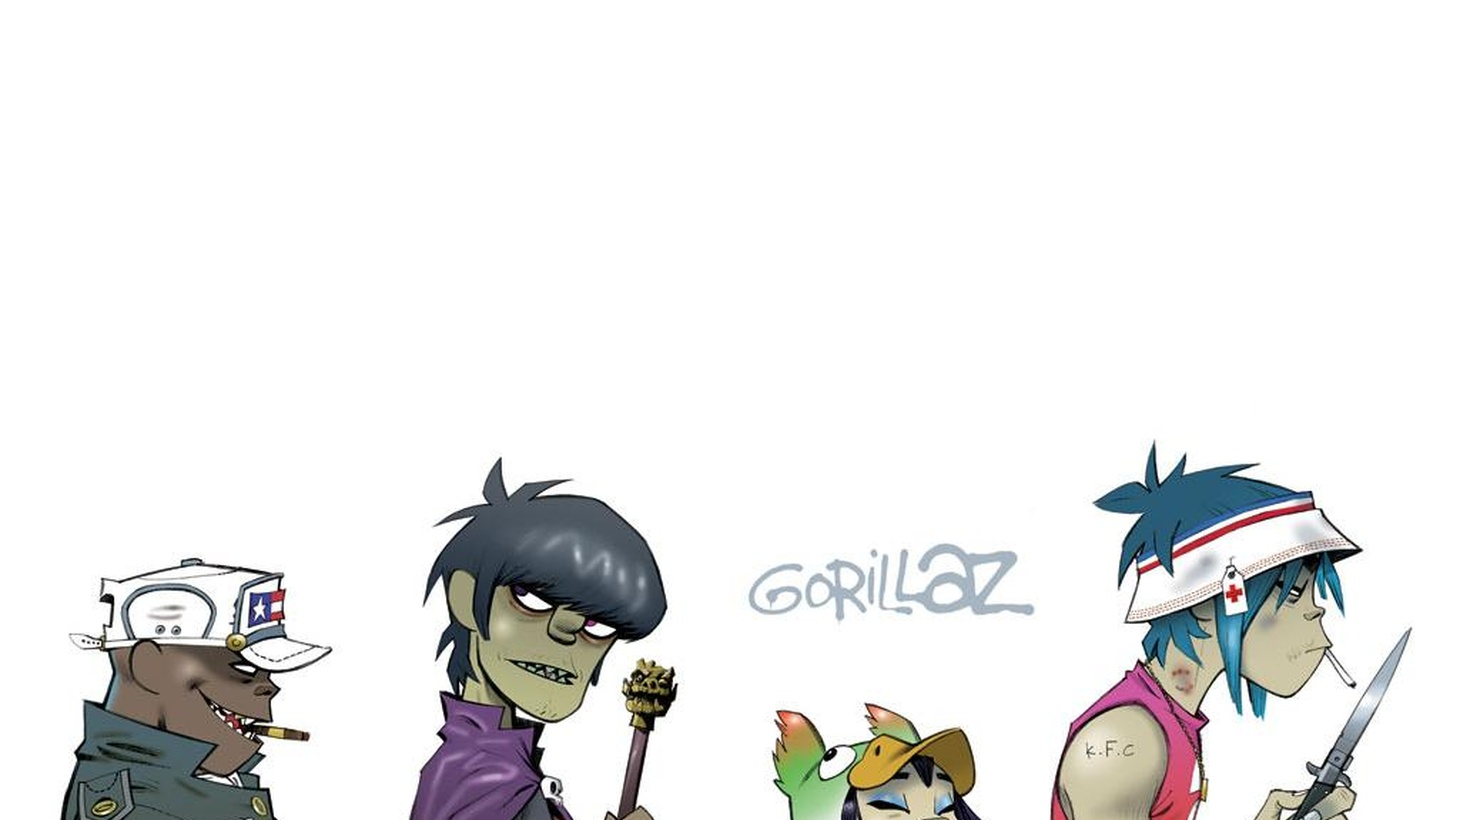 Gorillaz are a fictional band of cartoon characters created by Blur's Damon Albarn and Jamie Hewitt. They may be the world's most successful virtual band, but we'll host them in real life for a live performance and a chat with Jason Bentley on Morning Becomes Eclectic at 11:15am.